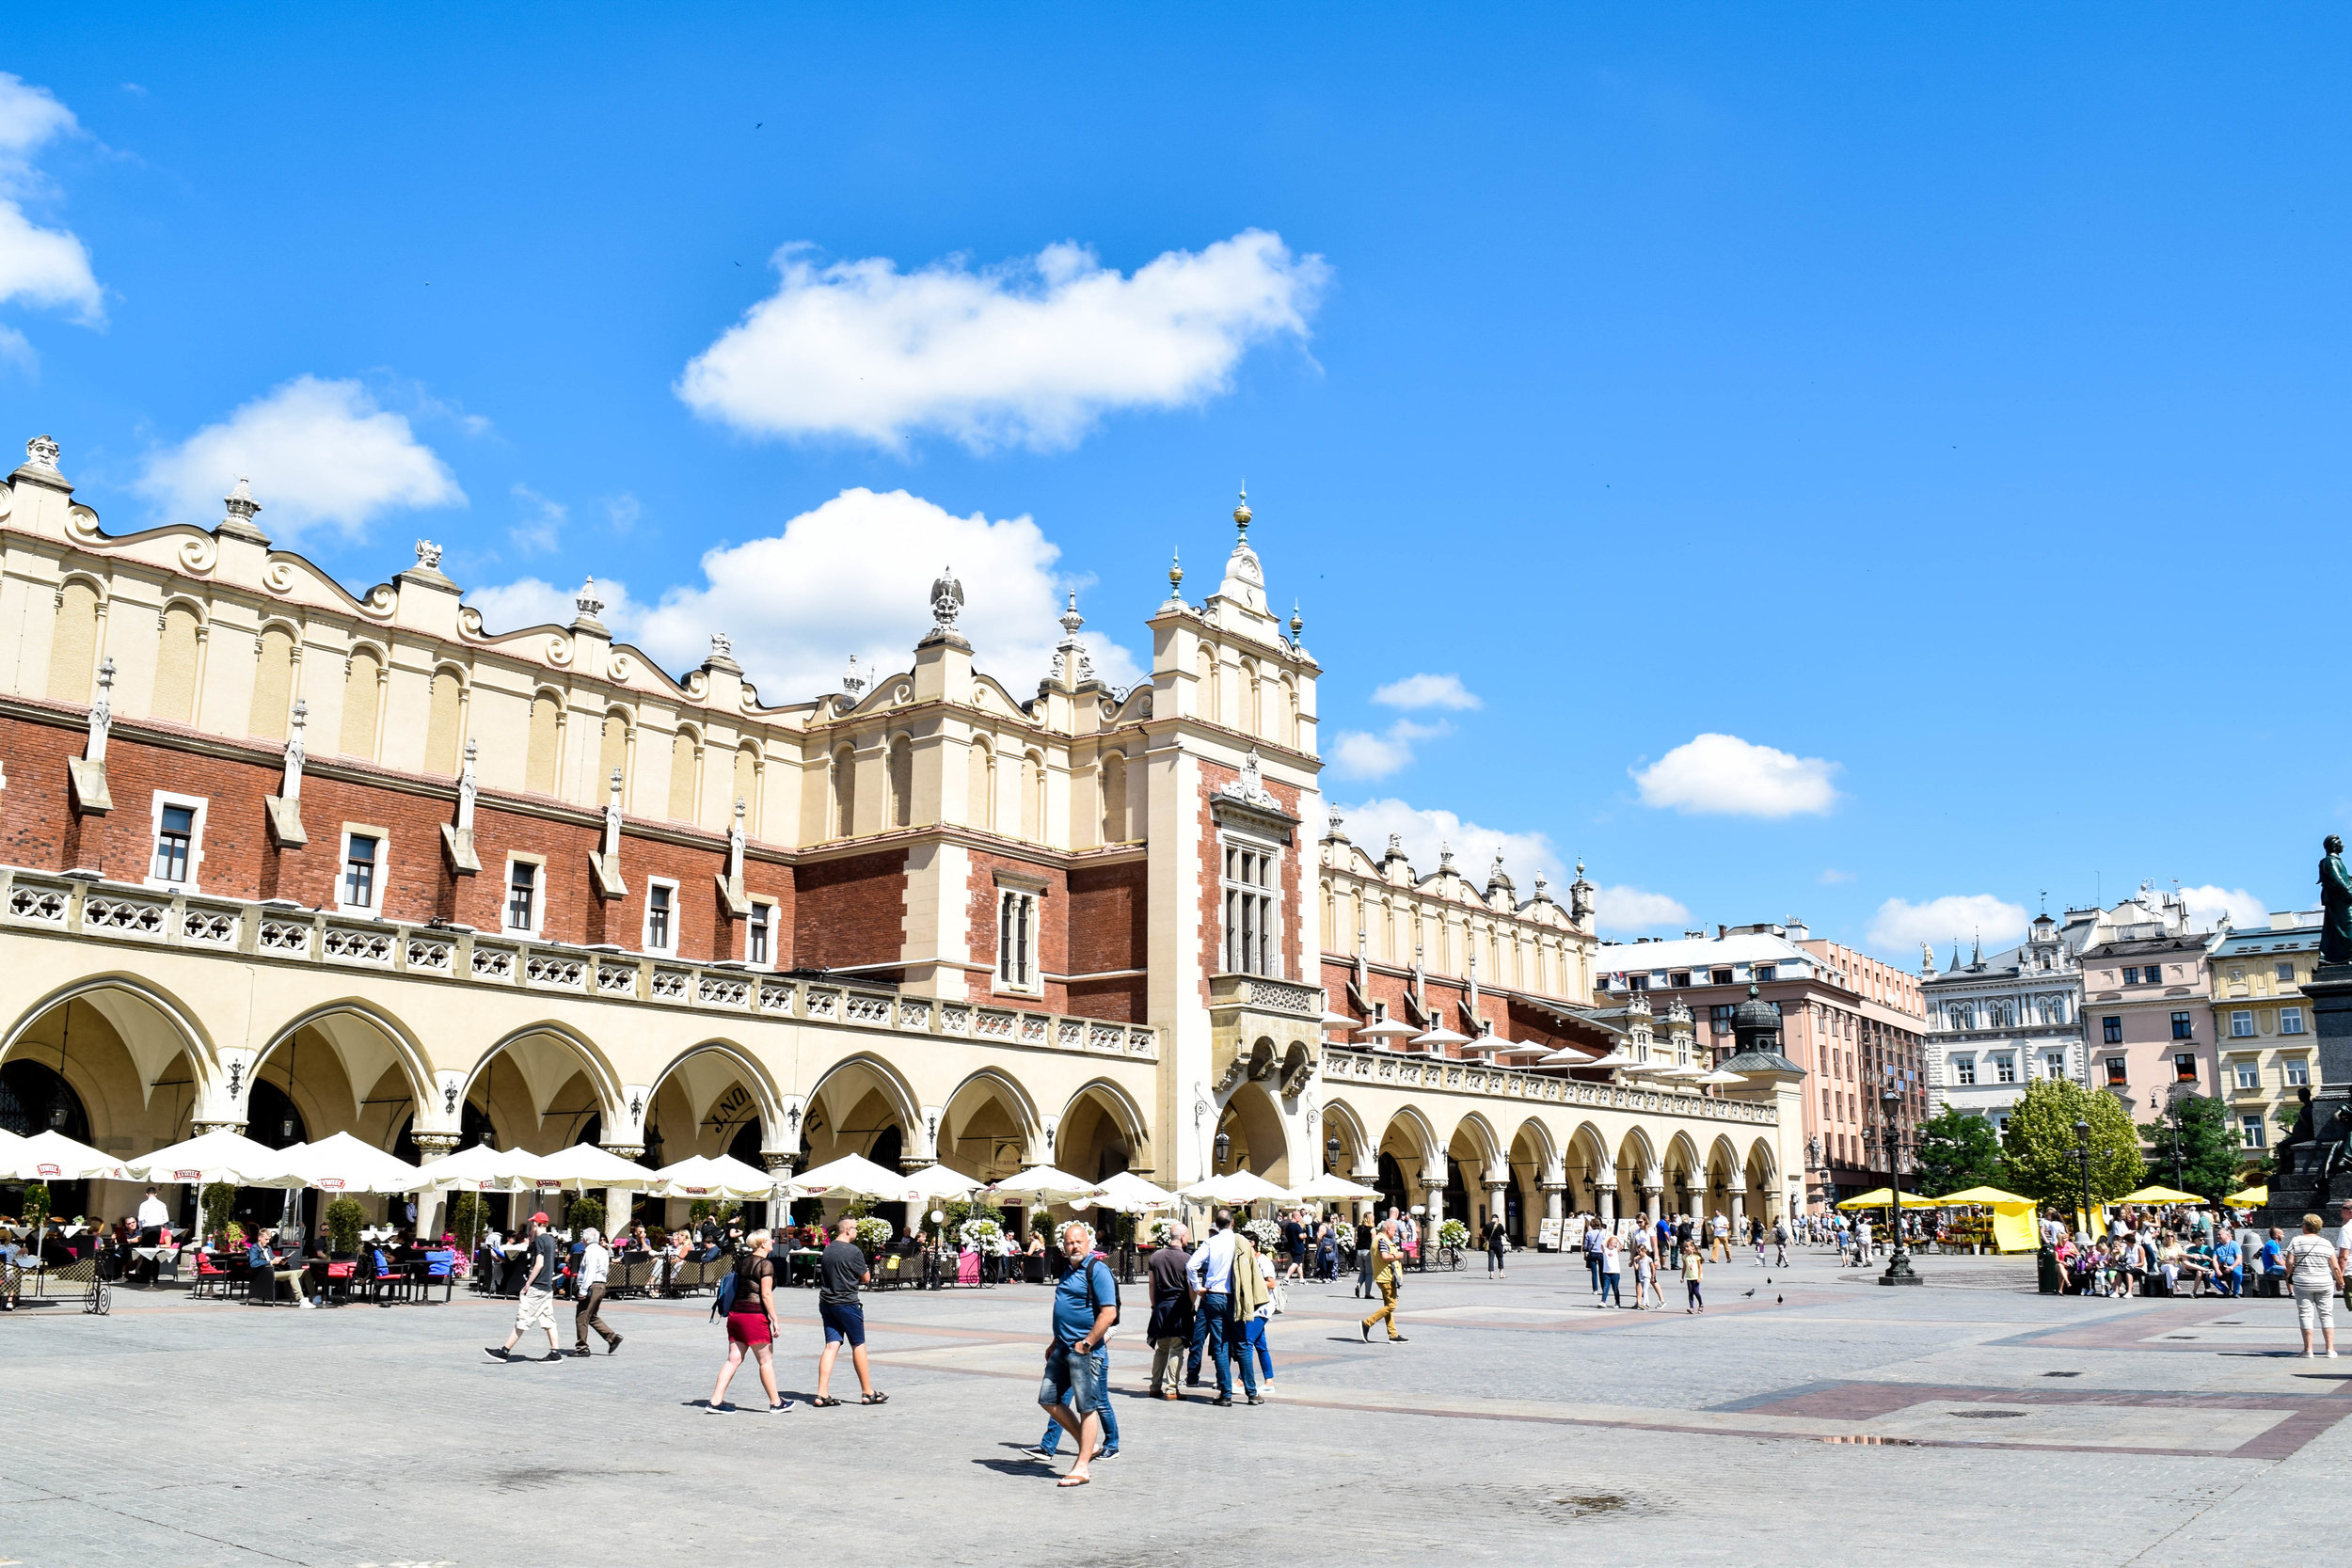 Cloth Hall in the center of the main square of Old Town